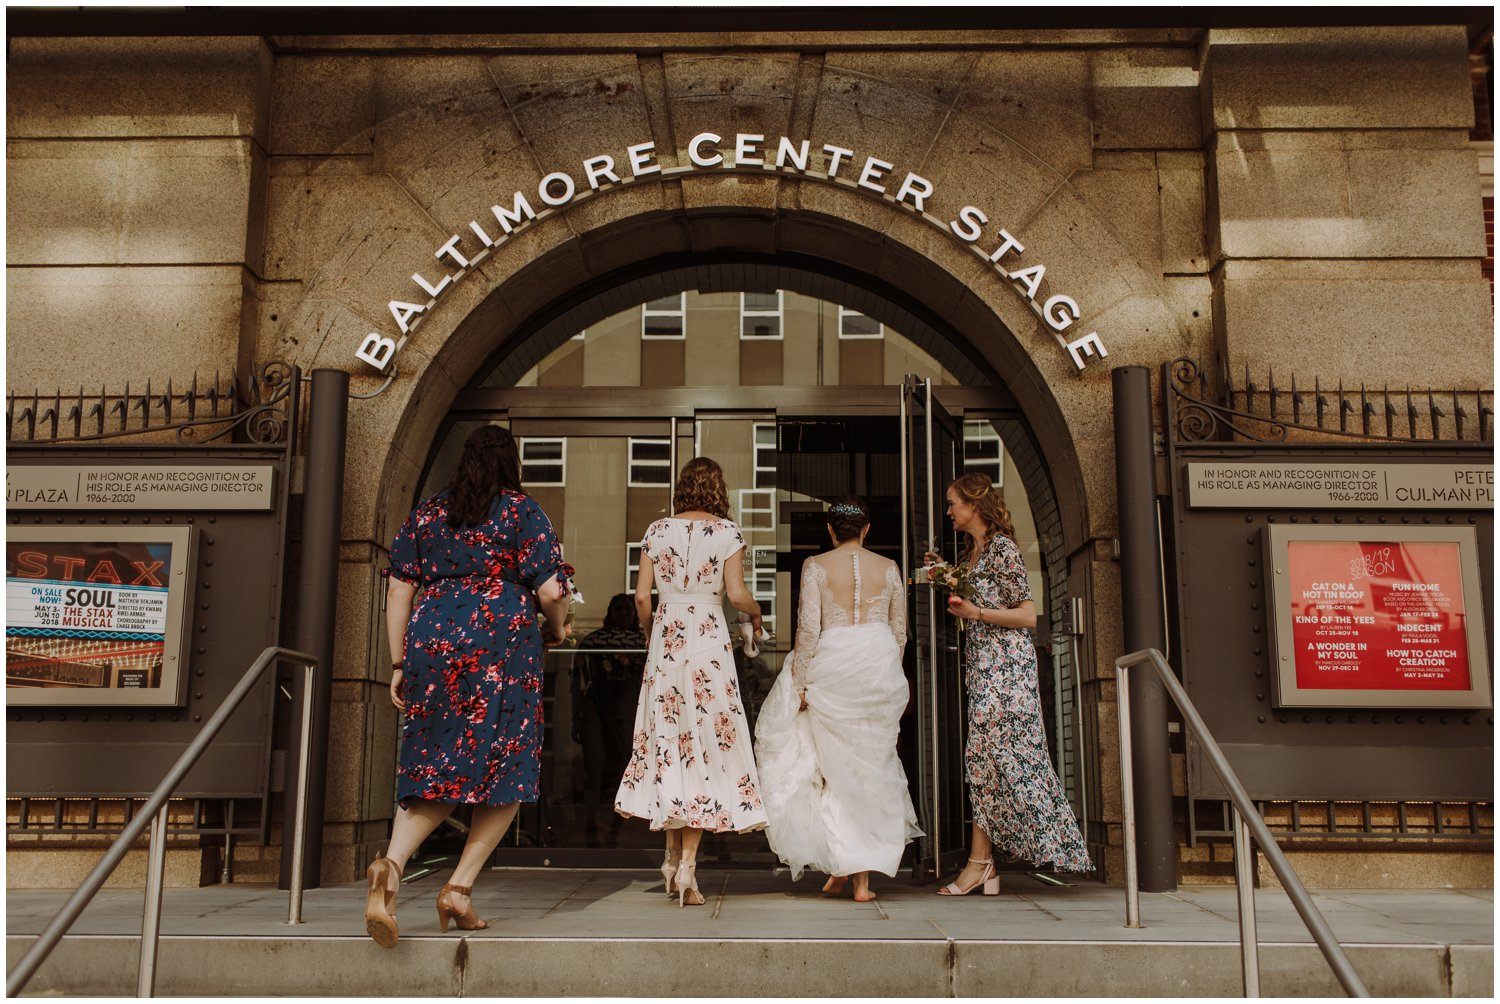 Baltimore Center Stage wedding floral bridesmaids dresses Baltimore wedding photographer